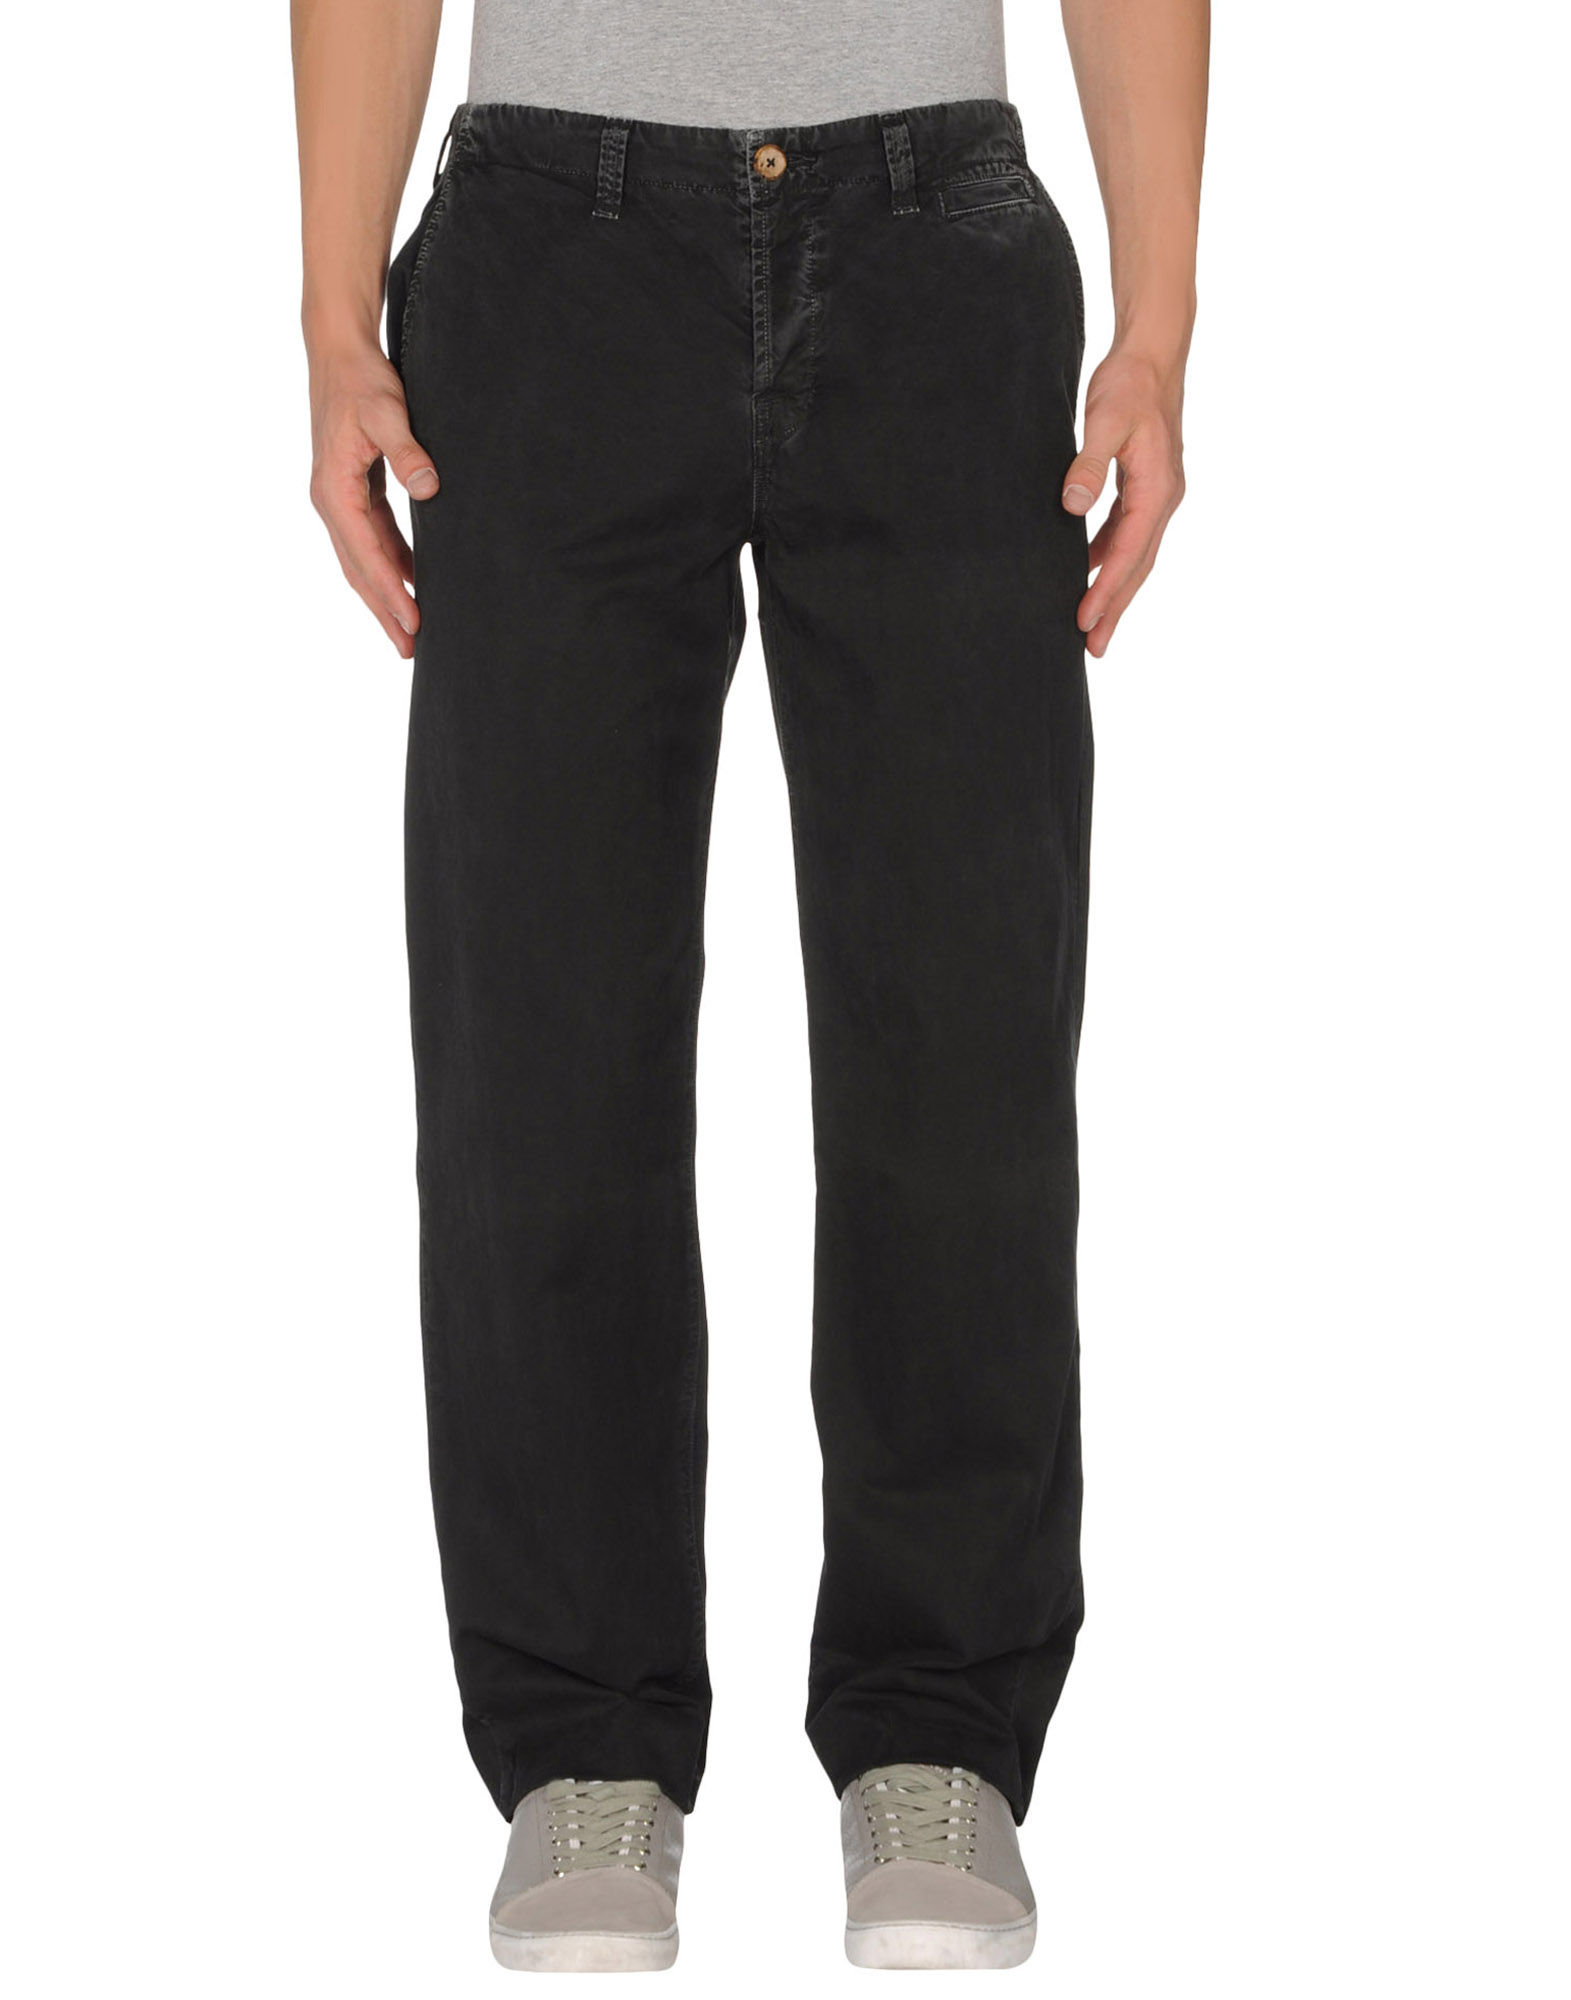 celebtubesnews.ml: women black casual pants. Women's High waisted Slim Fit Office Casual Pants Trousers with Pockets. Daily Ritual Women's Skinny Stretch Jegging. by Daily Ritual. $ $ 20 00 Prime. Exclusively for Prime Members. Some sizes/colors are Prime eligible. out of 5 stars